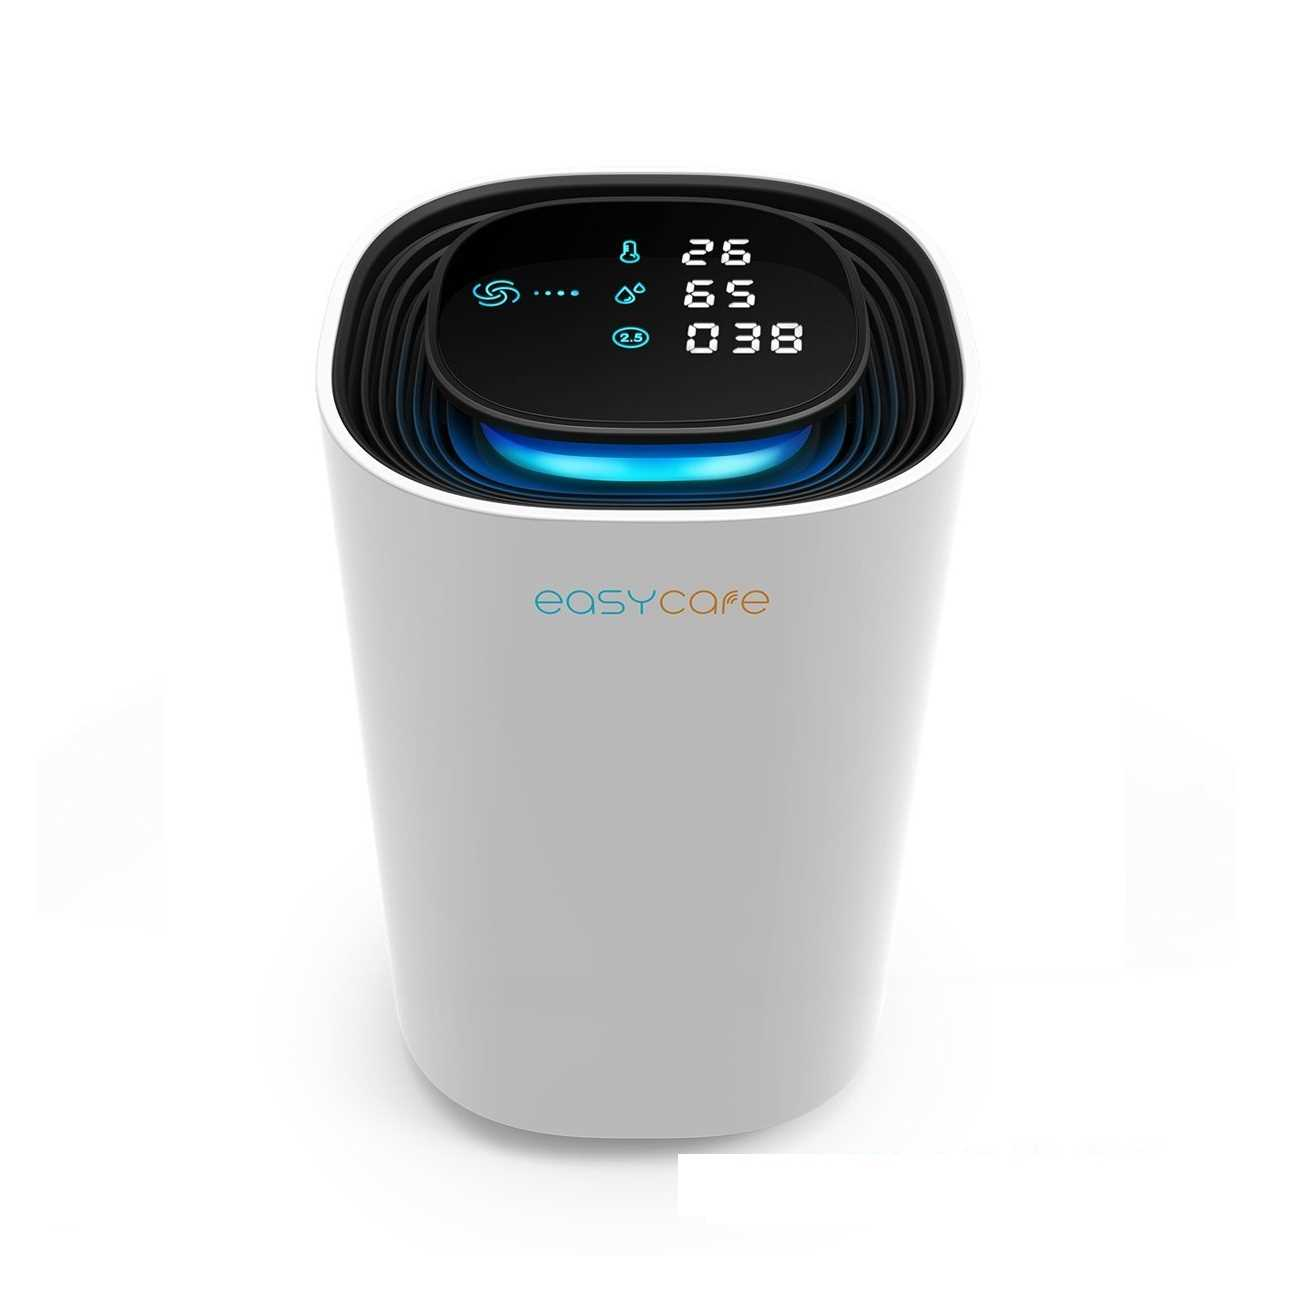 Easycare Smart2 Car Air Purifier